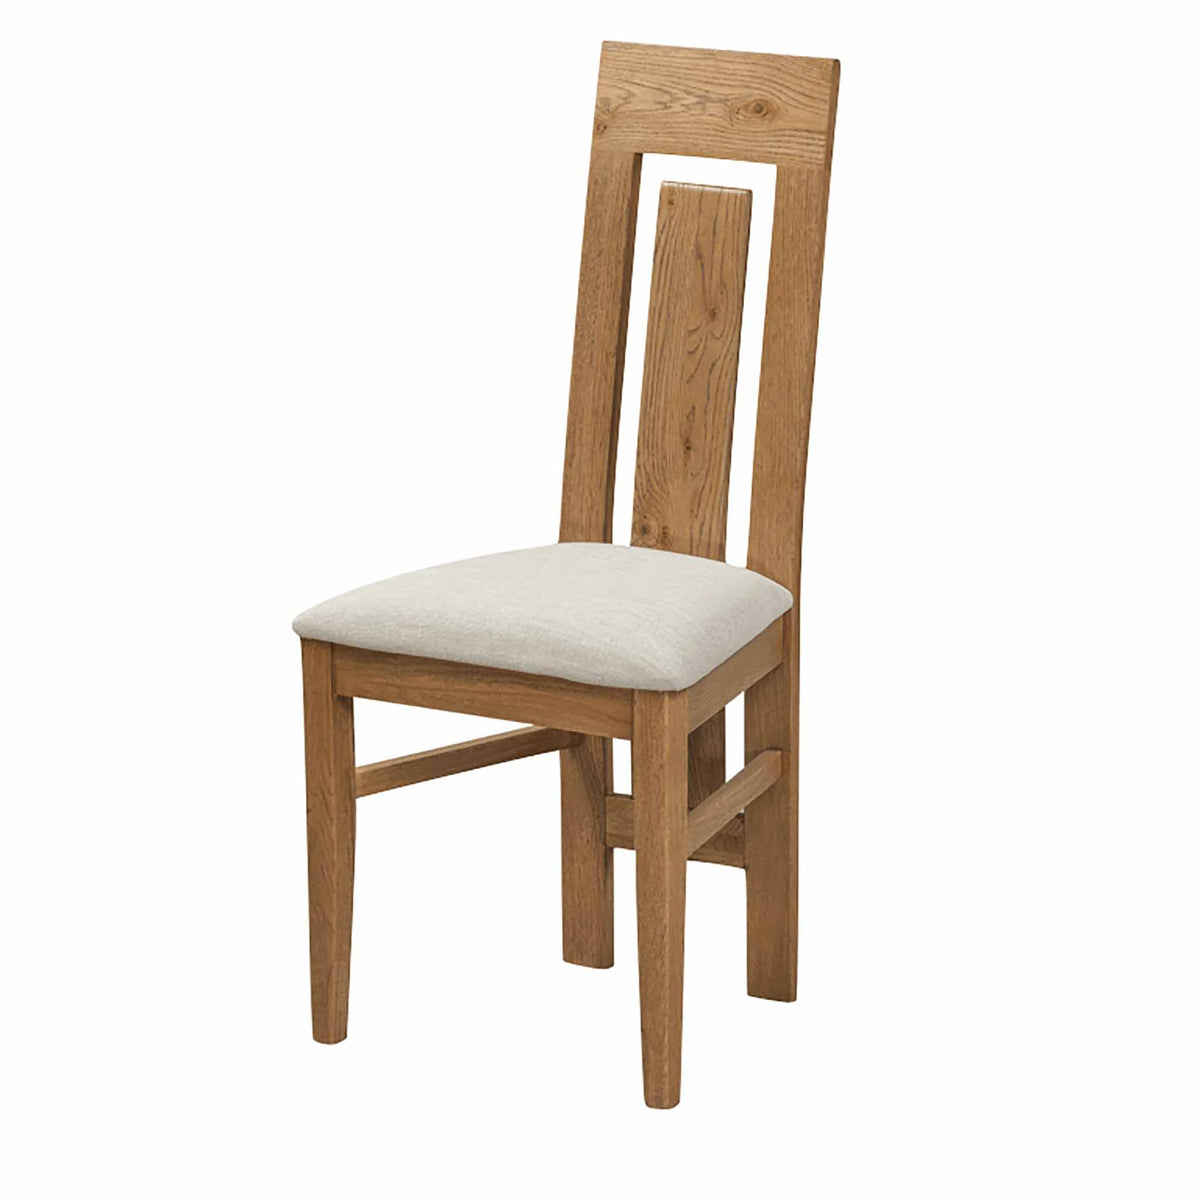 The Capri Oak Chunky Rustic Dining Chair from Roseland Furniture